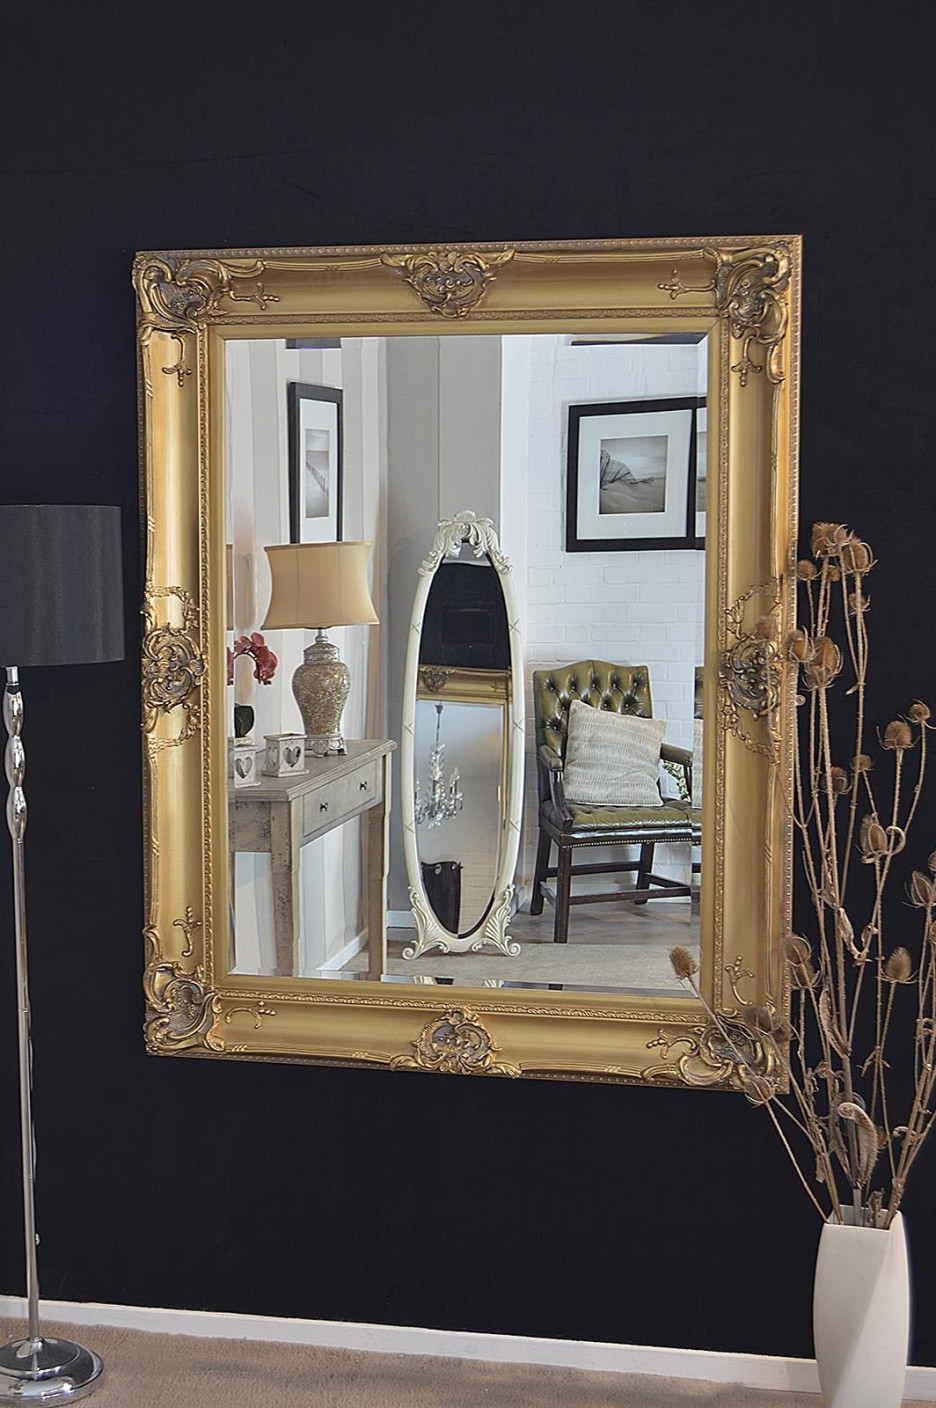 Mirrors Amazing Large Gold Wall Mirror Antique Framed Floor Inside Trendy Large Gold Wall Mirrors (View 6 of 20)